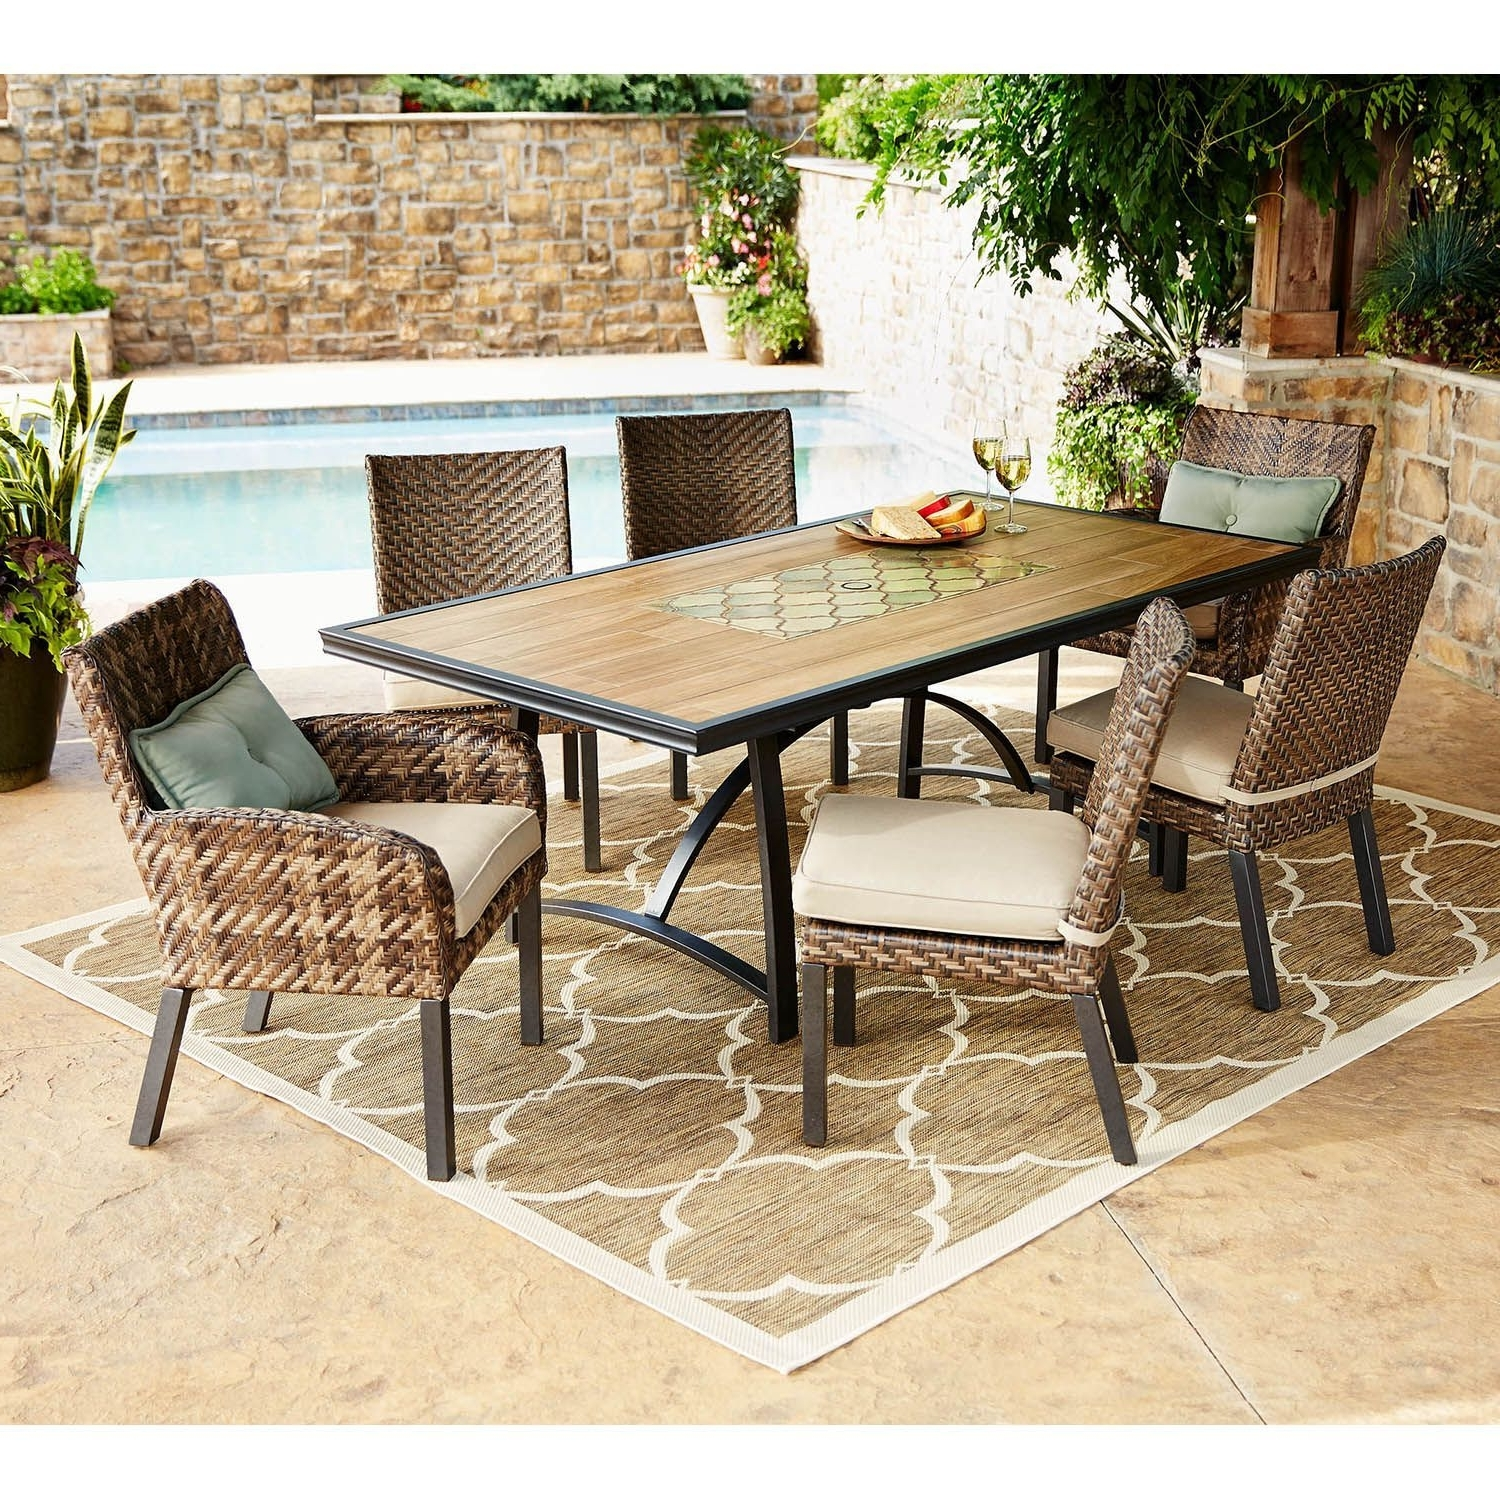 Patio Conversation Sets At Sam's Club Pertaining To Most Recently Released Member's Mark Essex 7 Piece Dining Set With Premium Sunbrella Fabric (View 11 of 15)